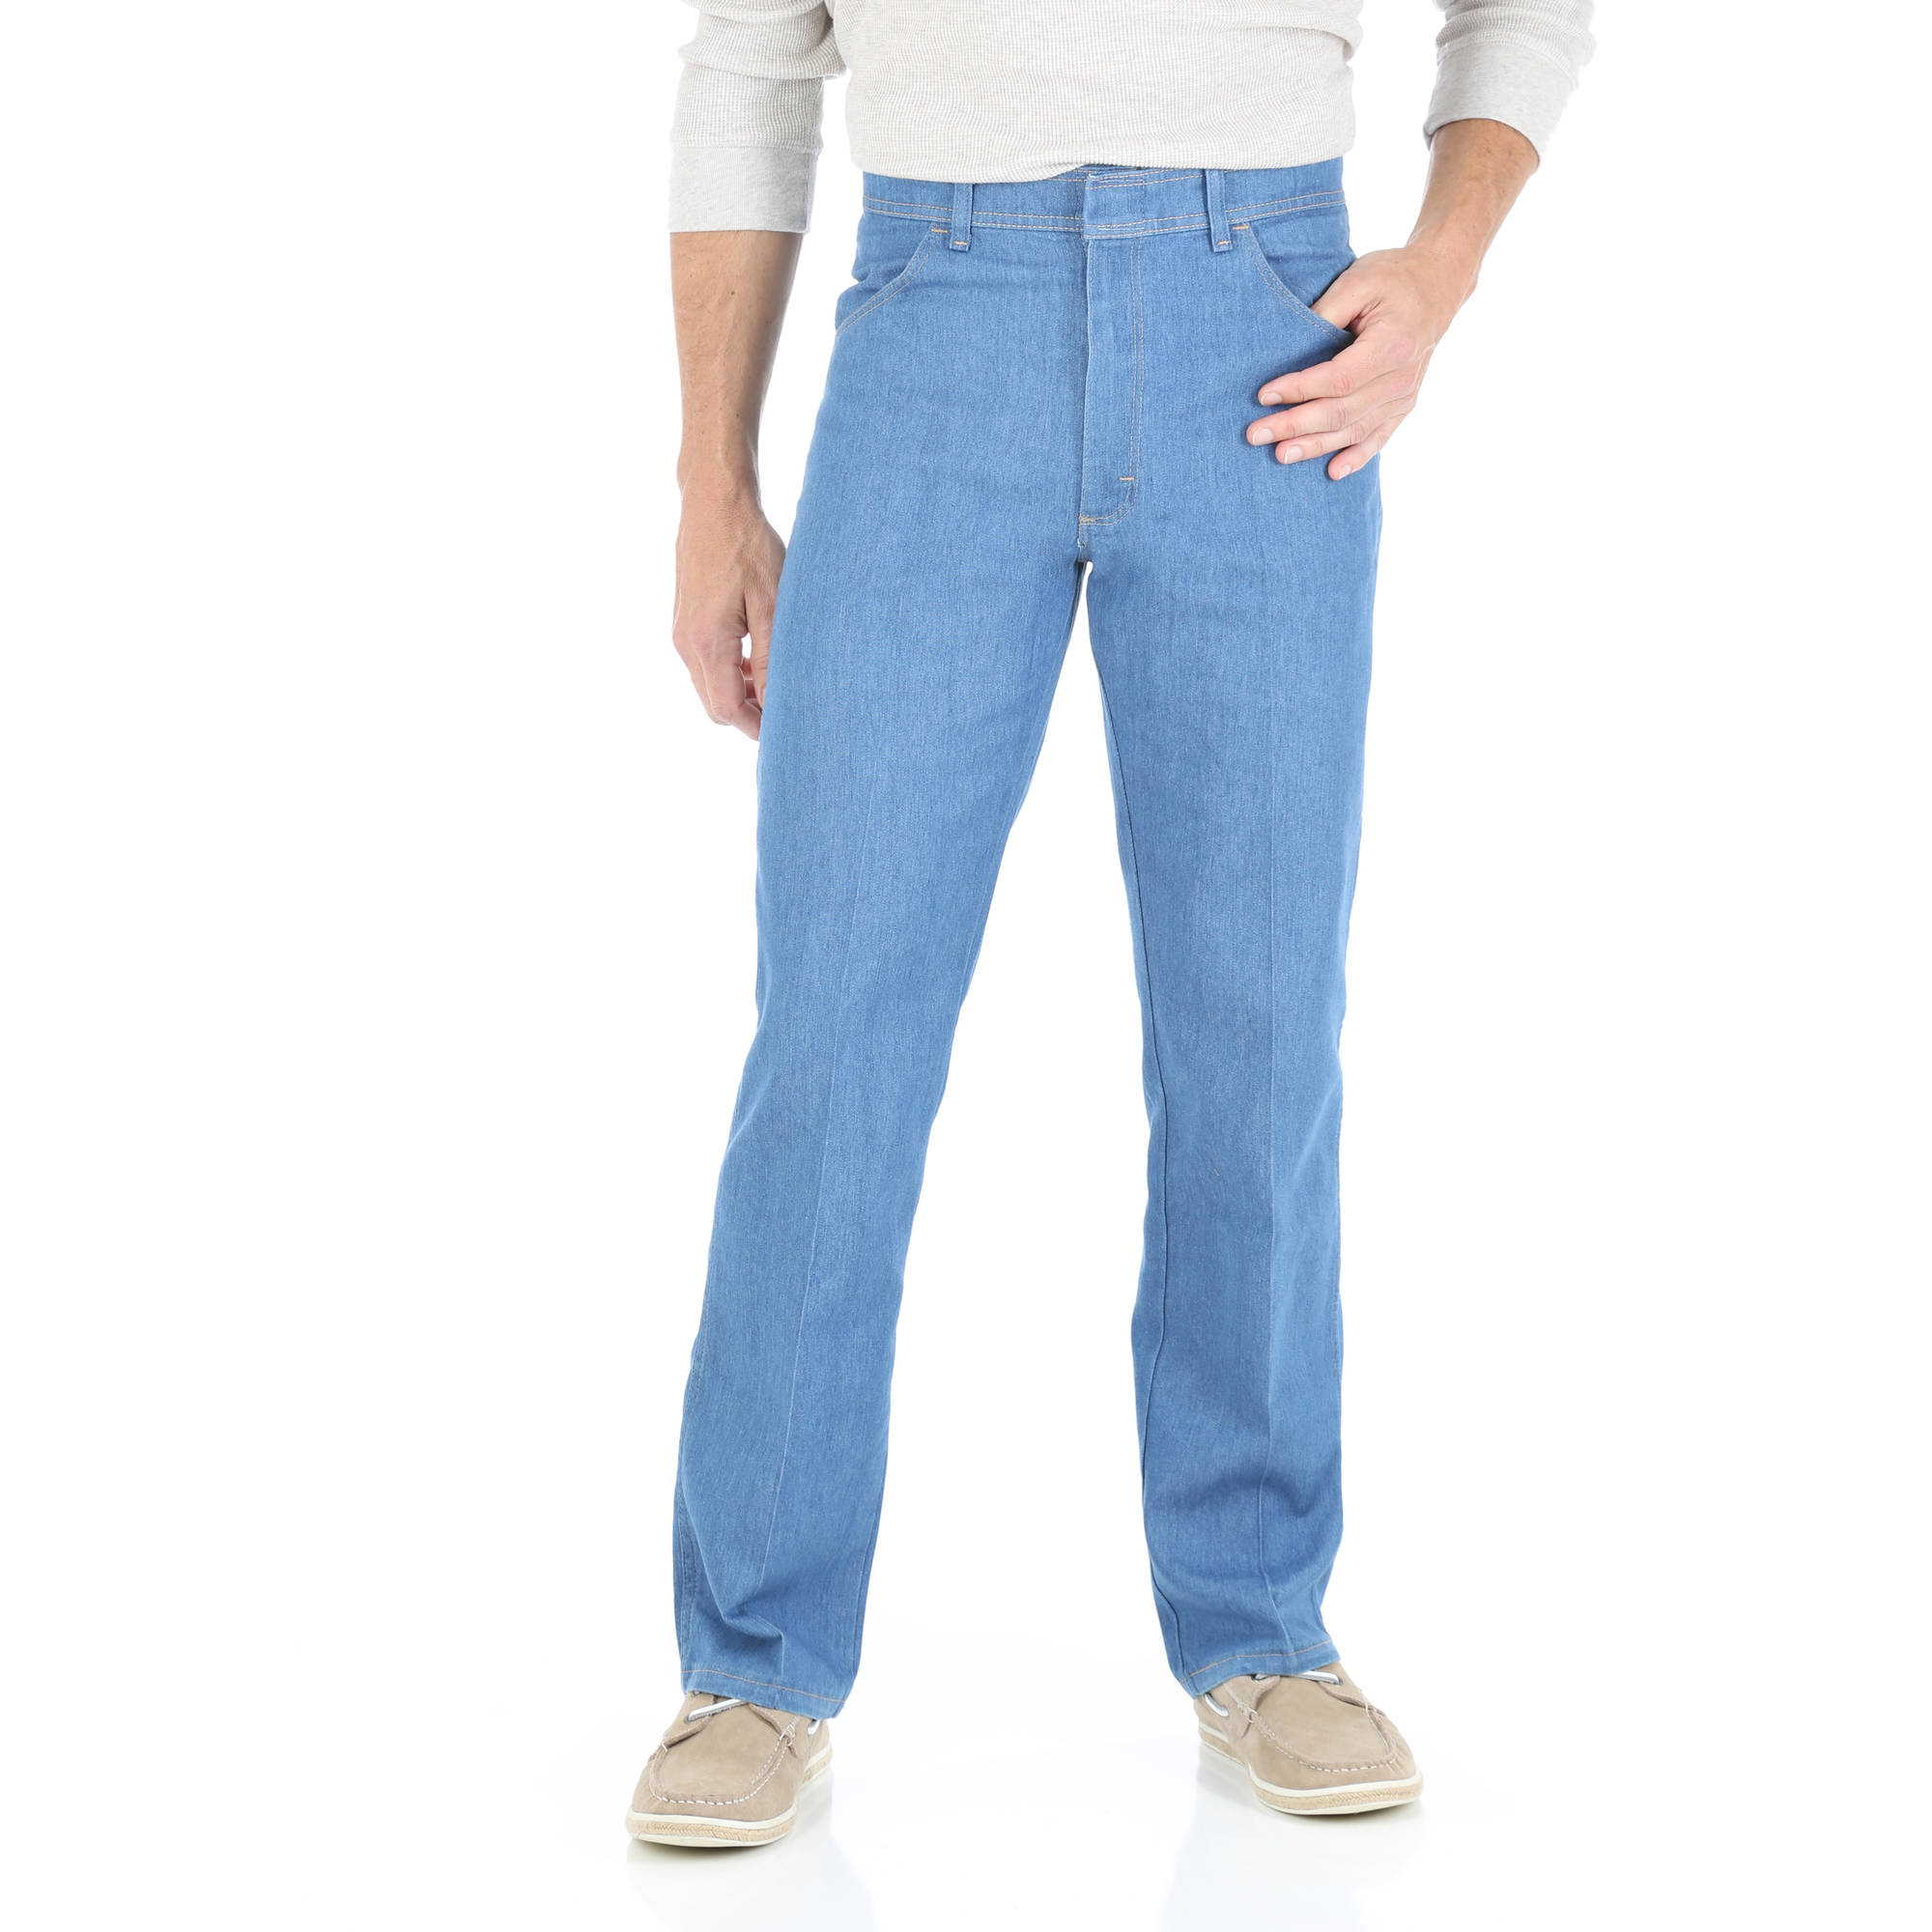 Wrangler - Big Men's Regular Fit Jeans with Comfort Flex Waistband ...